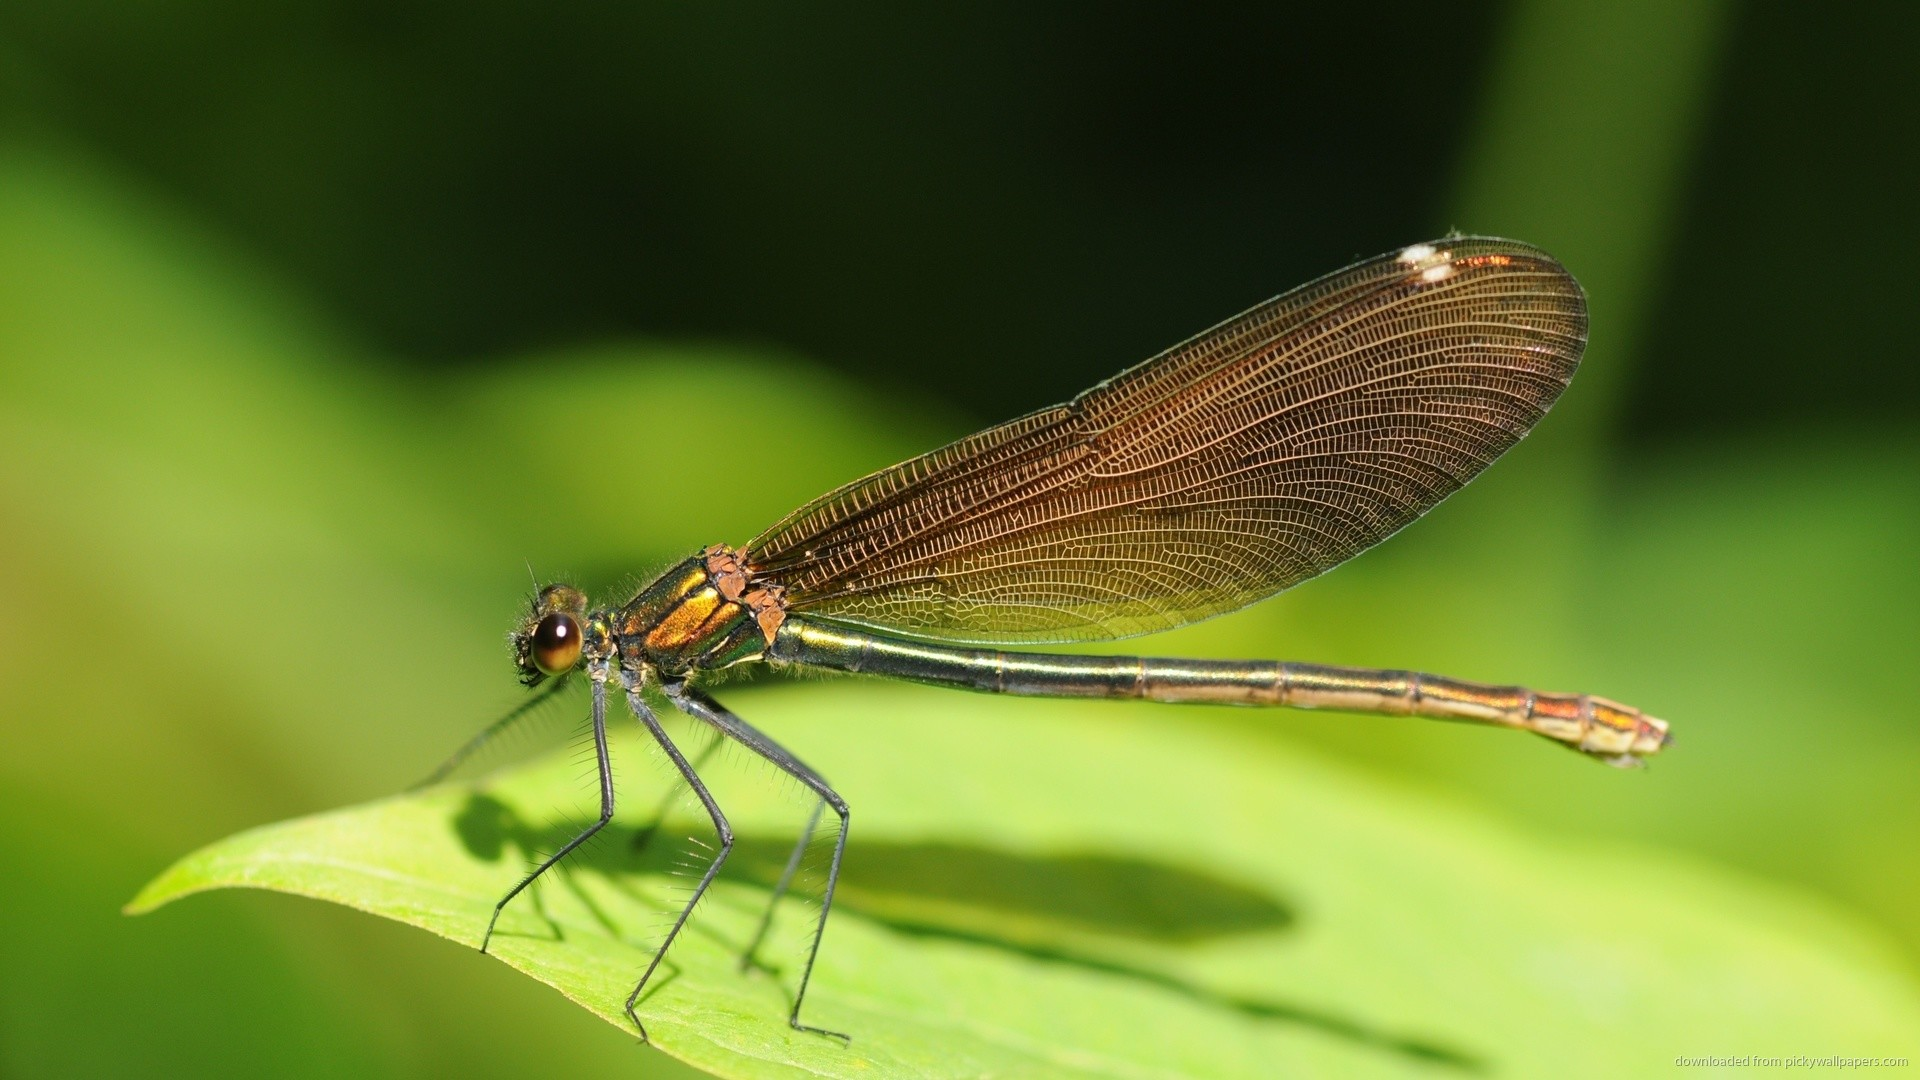 Dragonfly Insect On Leaf Wallpaper Background picture